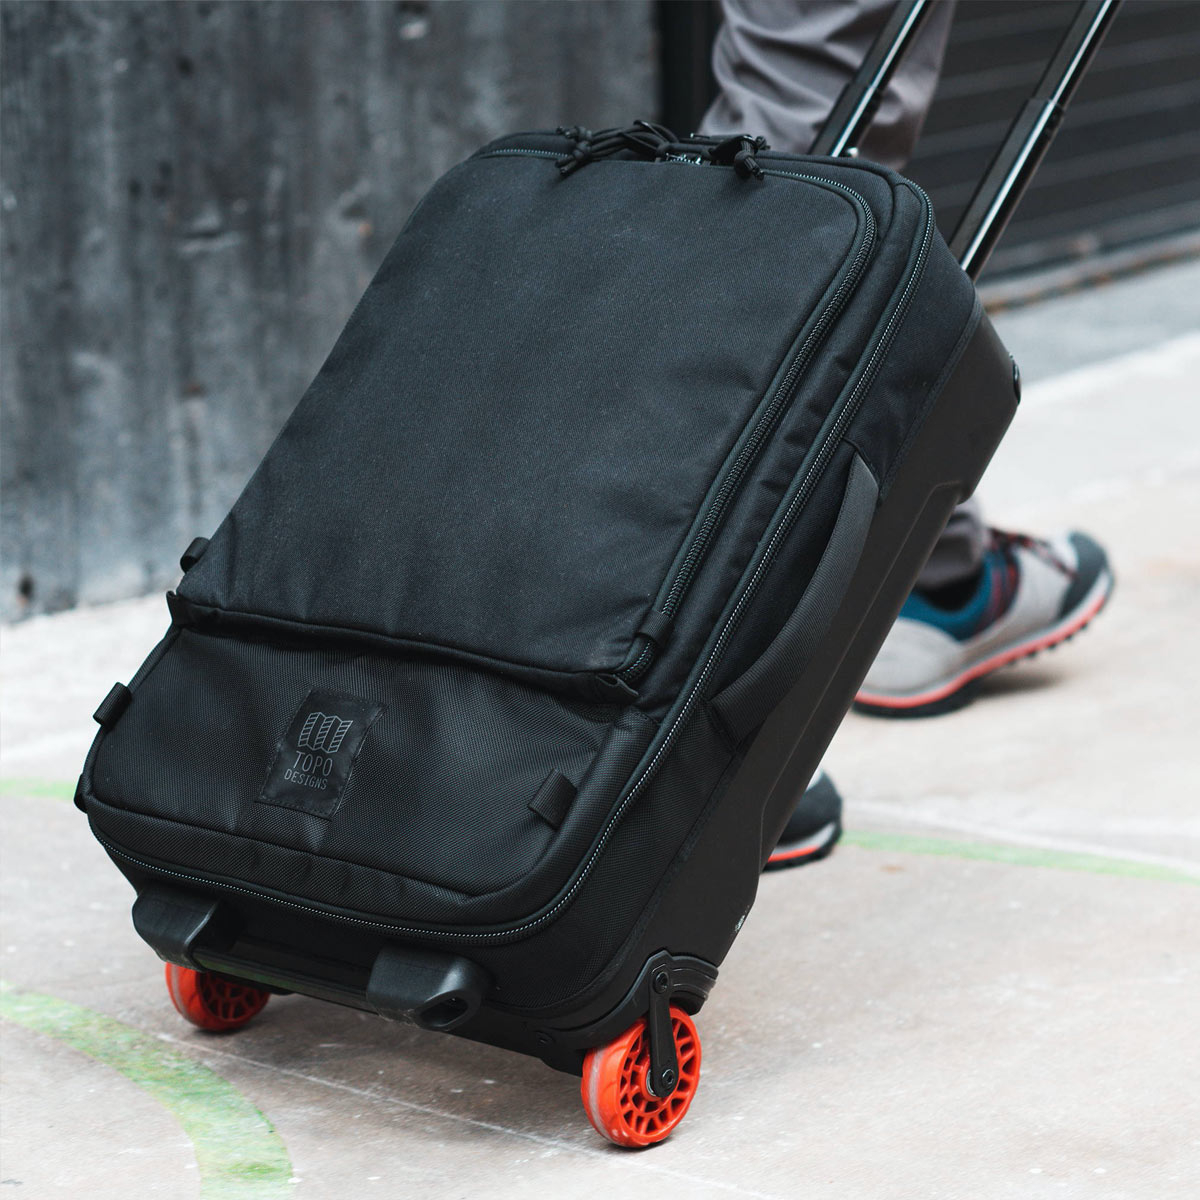 Topo Designs Travel Bag Roller Navy, carry-on friendly size and the 3-way carry ensures a smooth trip